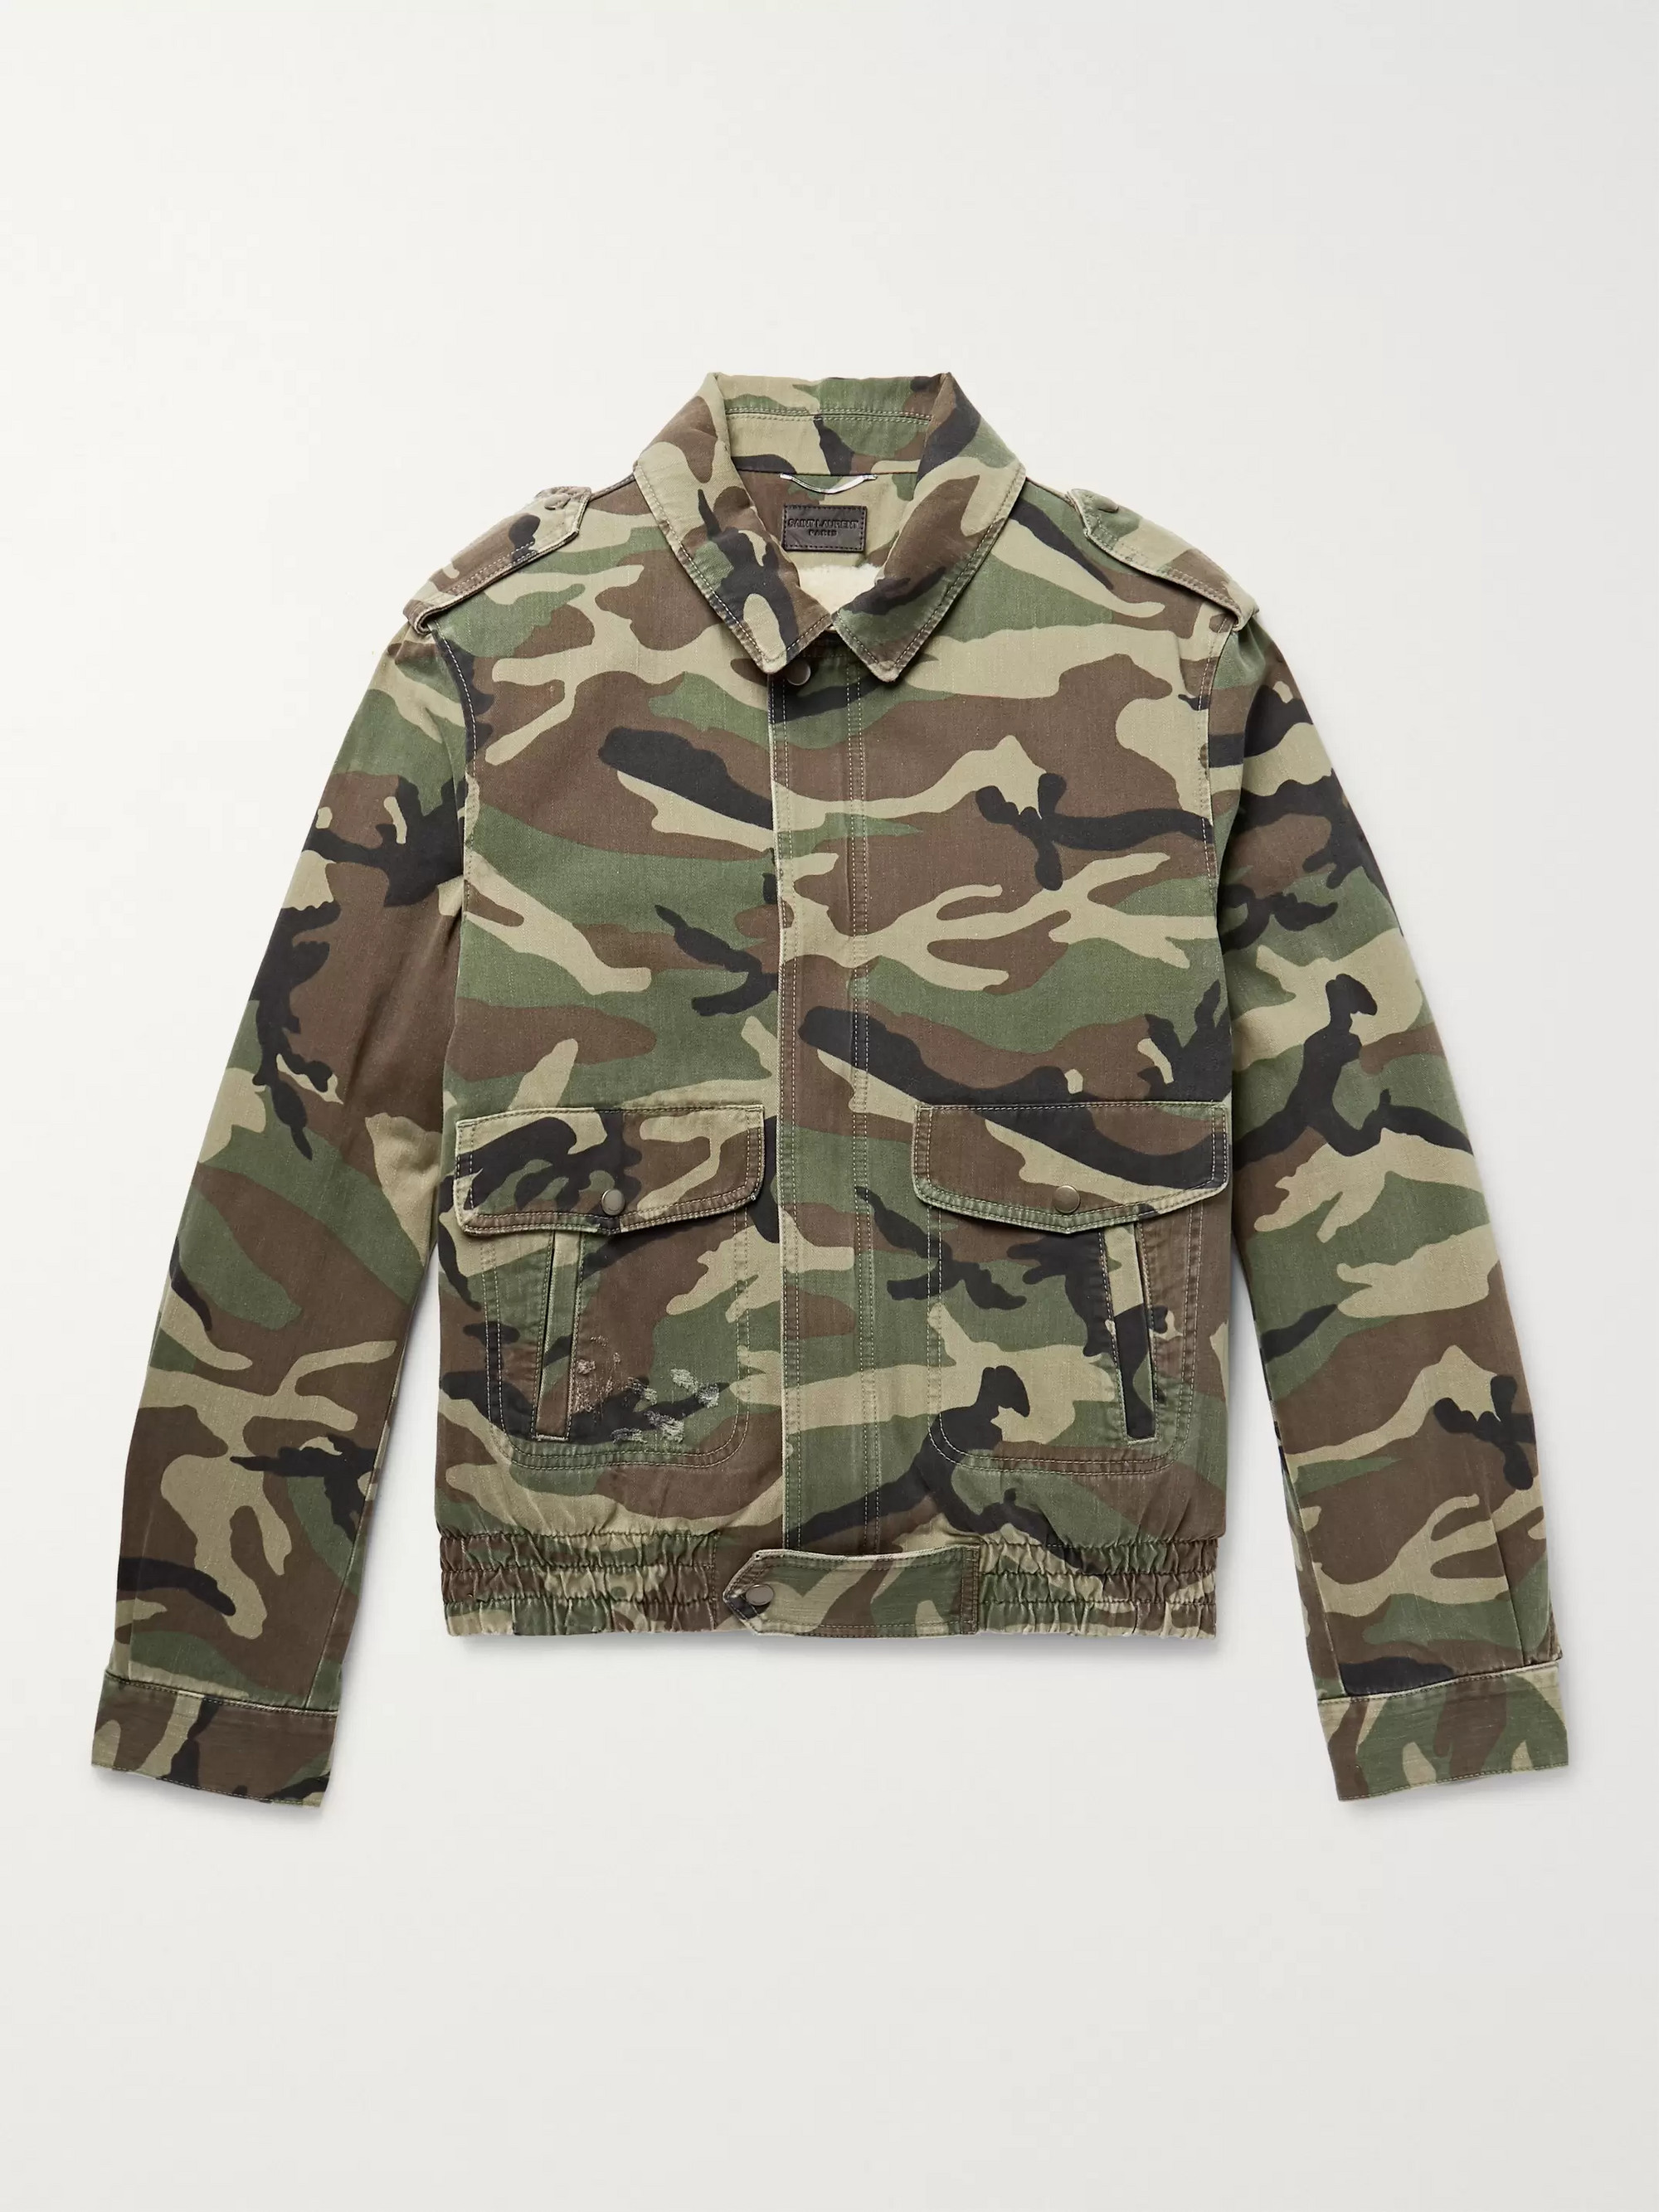 Shearling Lined Camouflage Print Cotton Twill Jacket by Saint Laurent